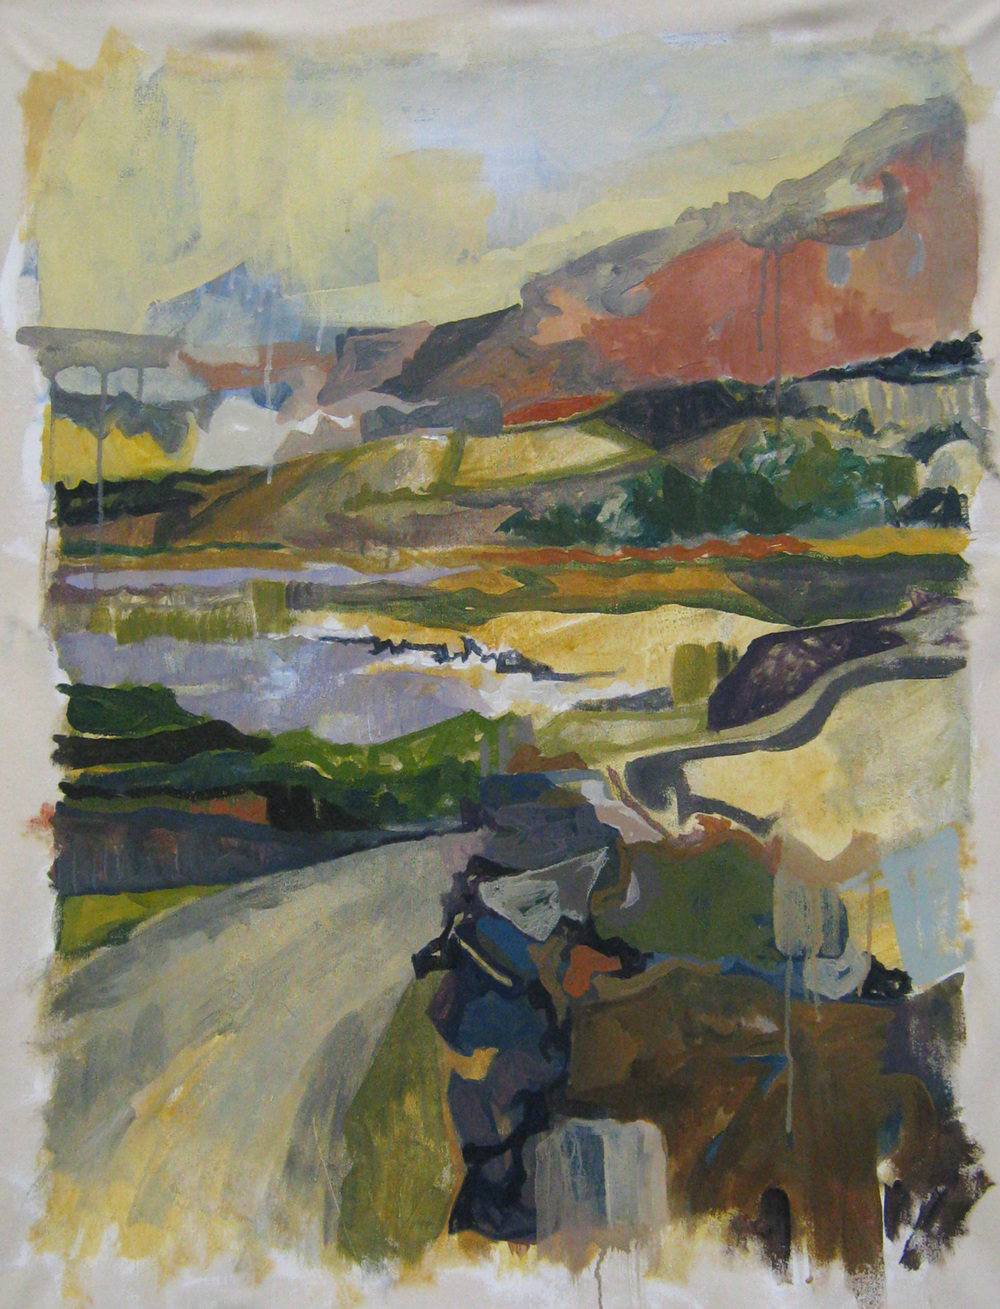 Burren Landscape  2010 20x30  acrylic on canvas